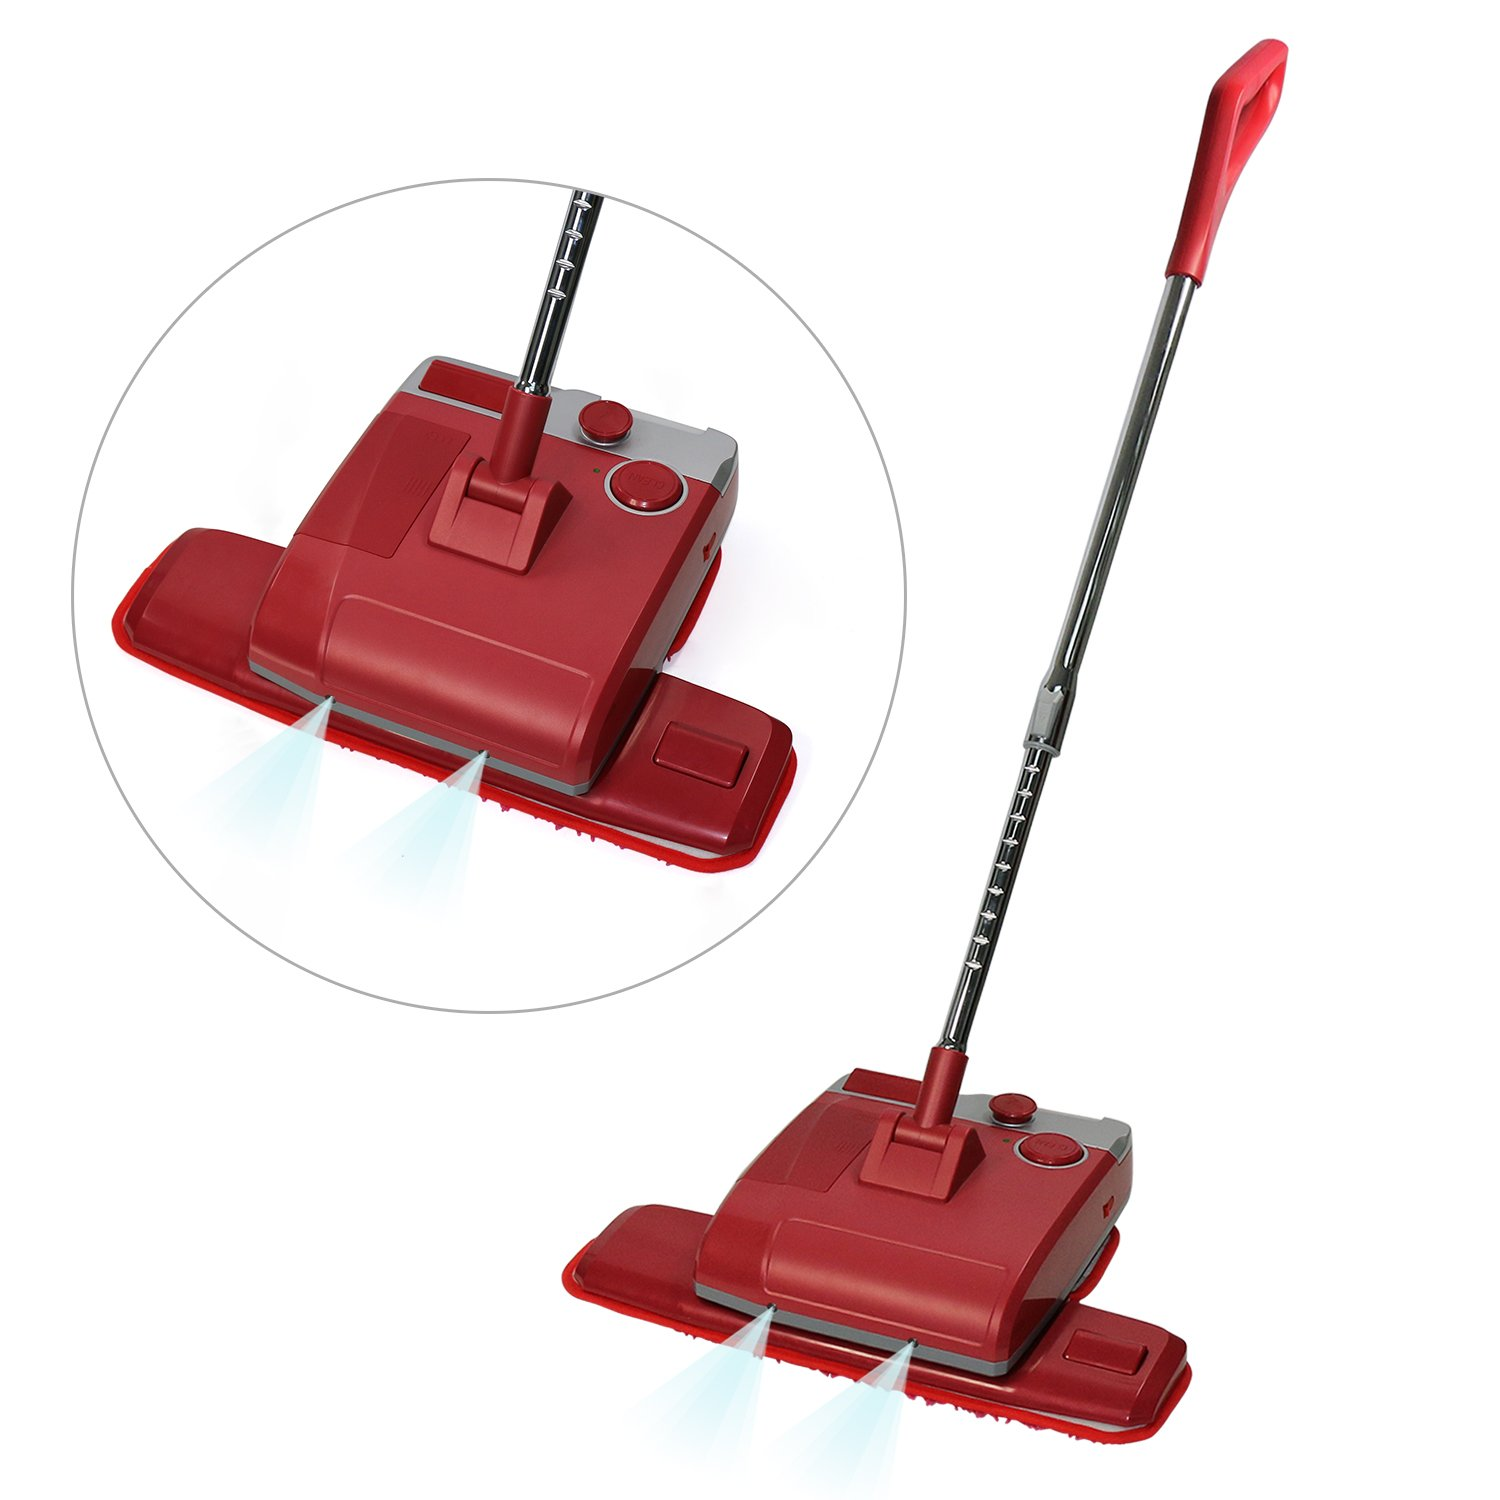 EVERTOP Cordless Power Floor Polisher Cleaner for Marble, Tiles, Wood Floor - Red FD-CMP-Red-001